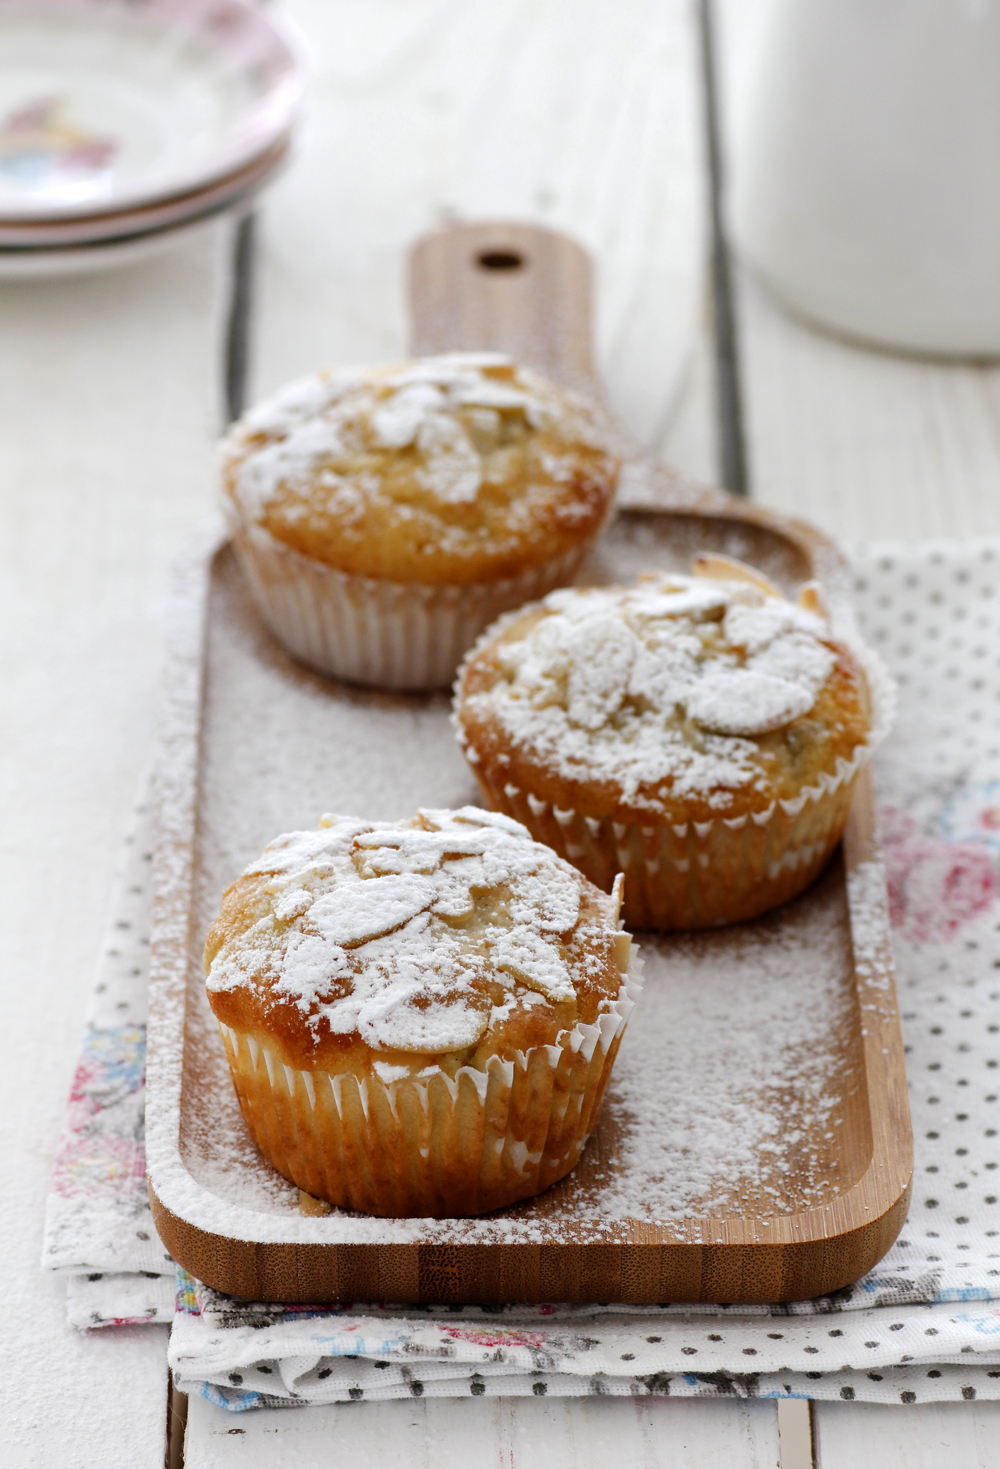 Pear Muffins with Cream Cheese and Almonds